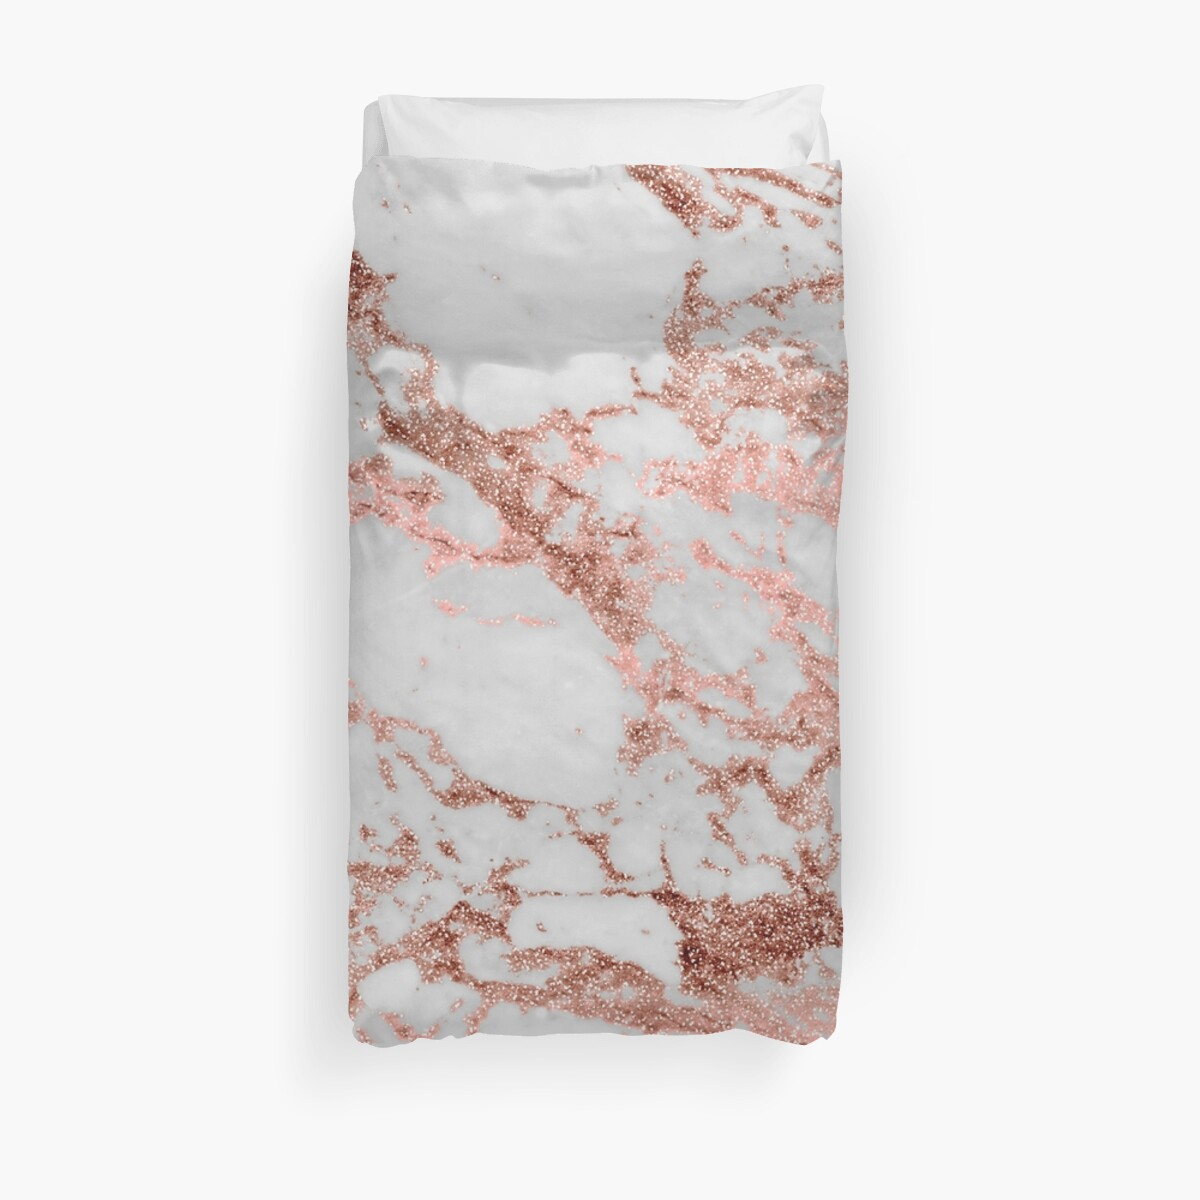 Quot Stylish White Marble Rose Gold Glitter Texture Image